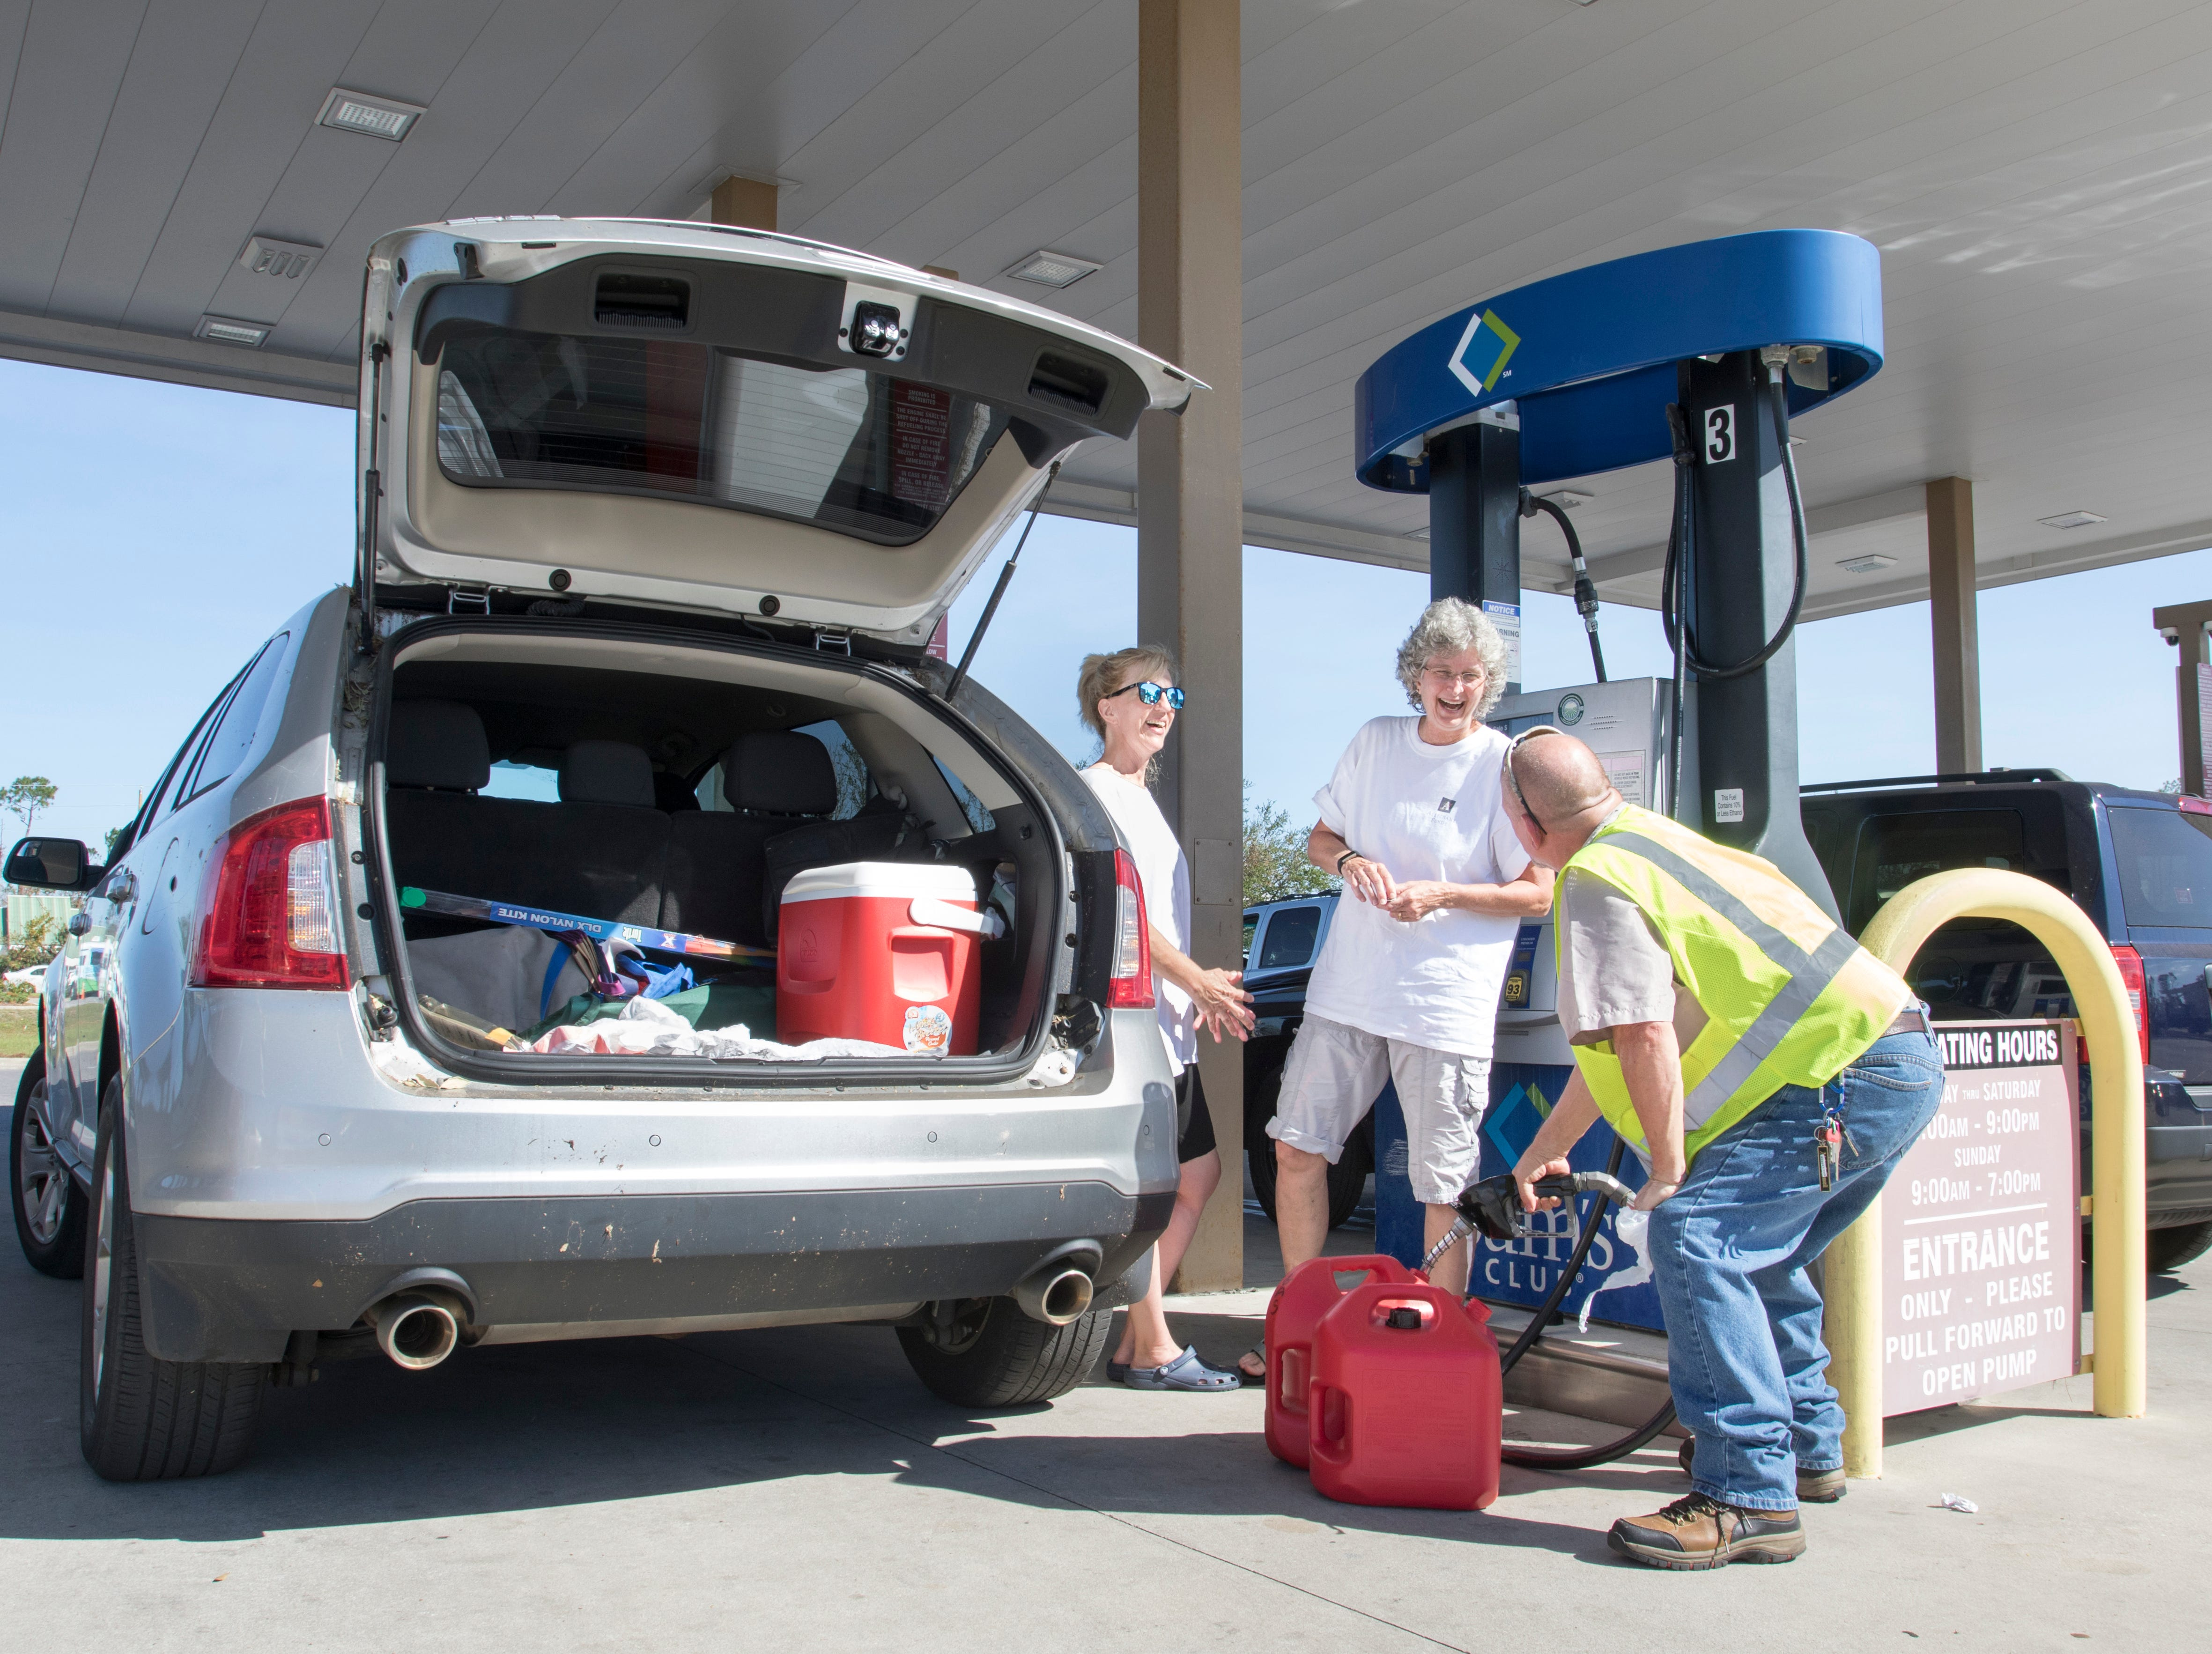 Cathy Meunier, left, and Betsy Straley have a laugh with Bob Orlick, of Port Charlotte, Florida, as he helps fill their gas containers at the Sam's Club on West 23rd Street in Panama City, Florida on Wednesday, October 17, 2018.  Drivers are thrilled that their wait for gas has gone from up to 4 hours earlier in the week down to 30 to 45 minutes today.